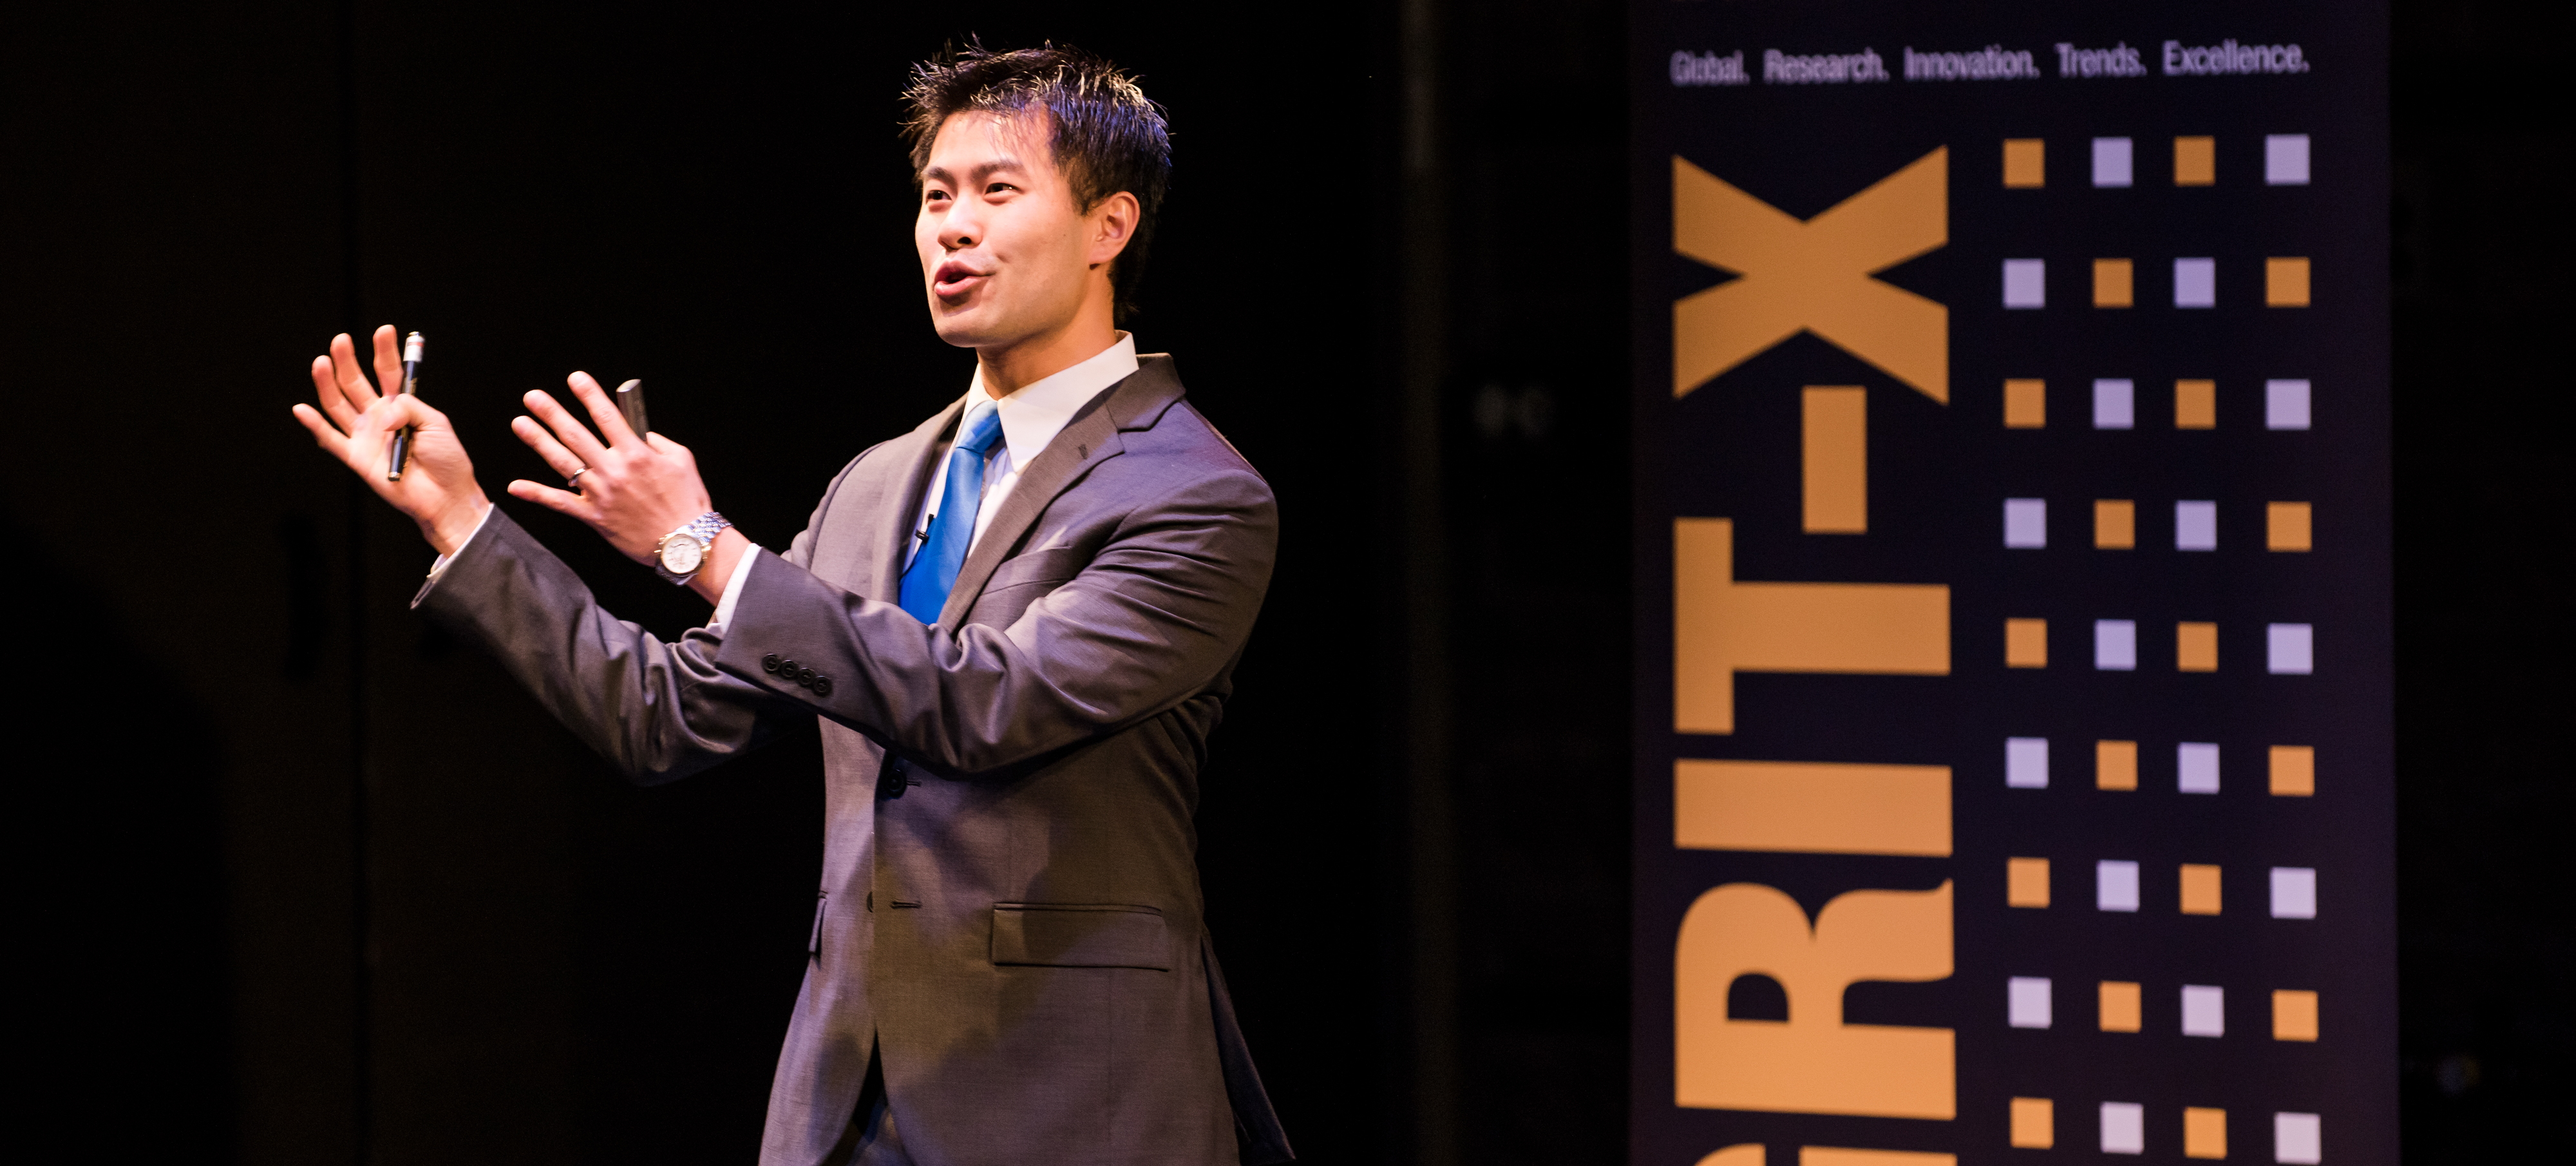 GRIT-X 2018 features UMBC Alumni, Faculty and Graduate Student